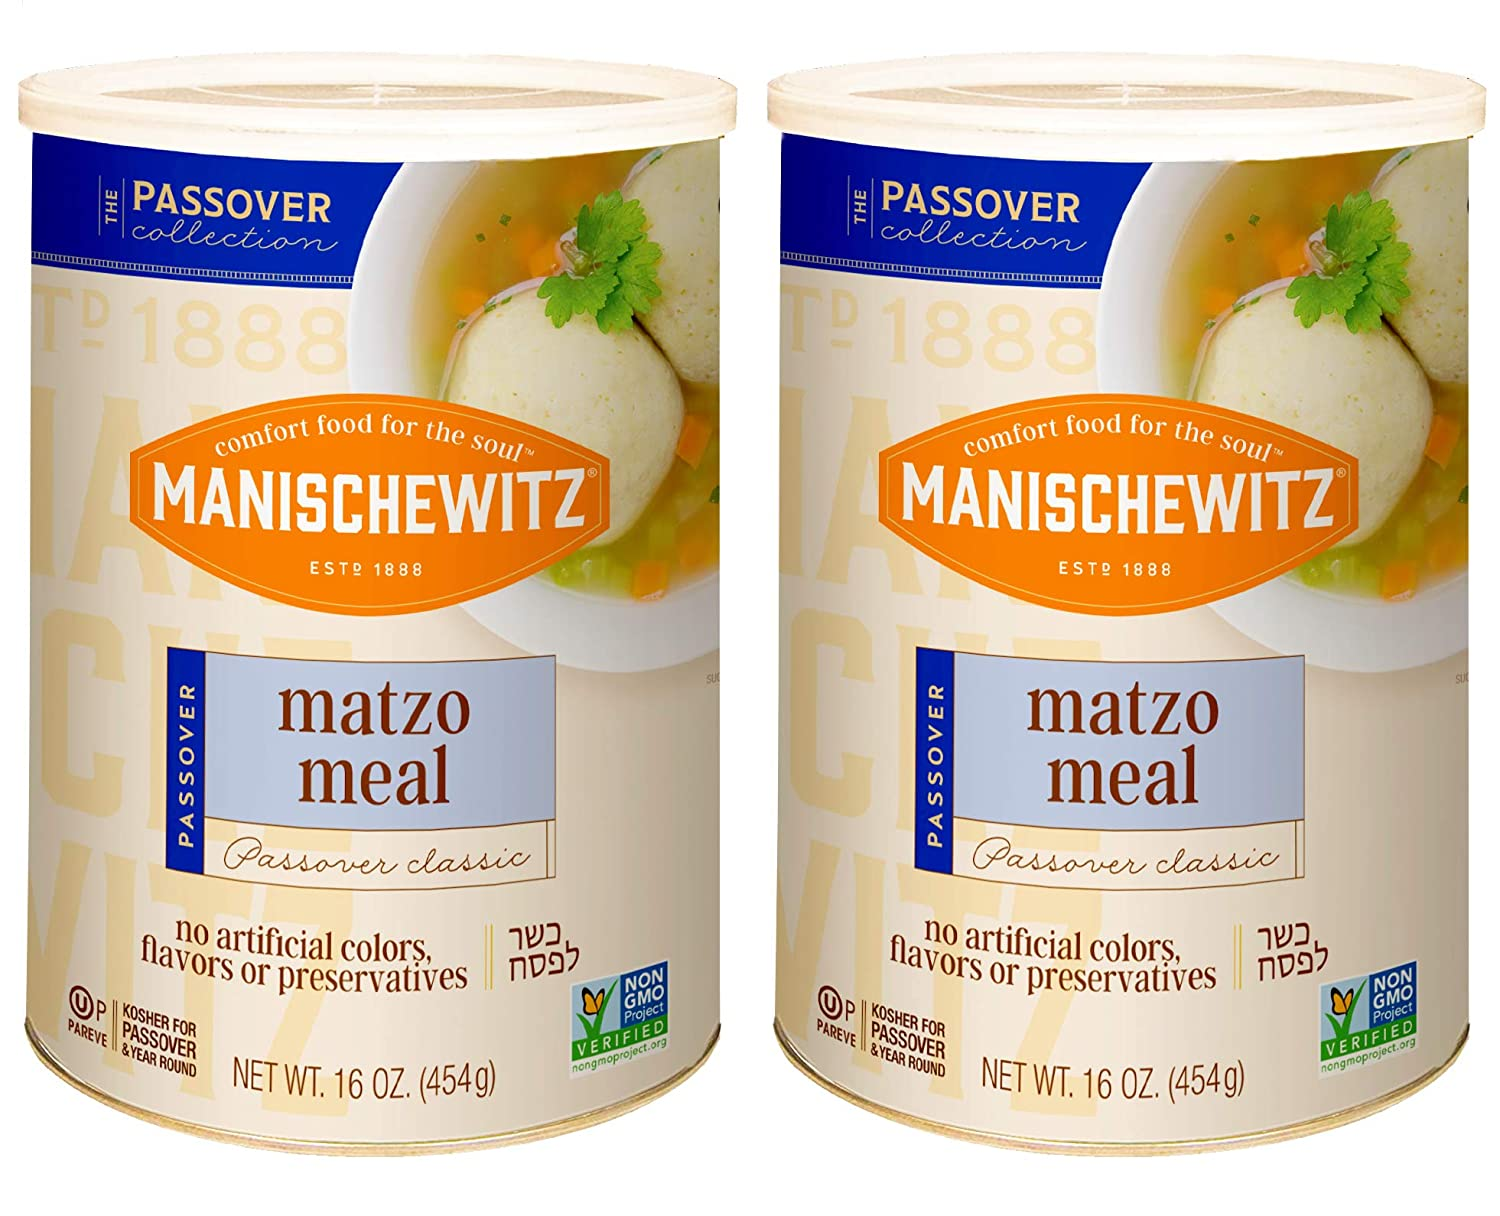 Manischewitz Matzo Meal, 16 oz Resealable Canister, (2 Pack - Total 2lbs) Kosher for Passover